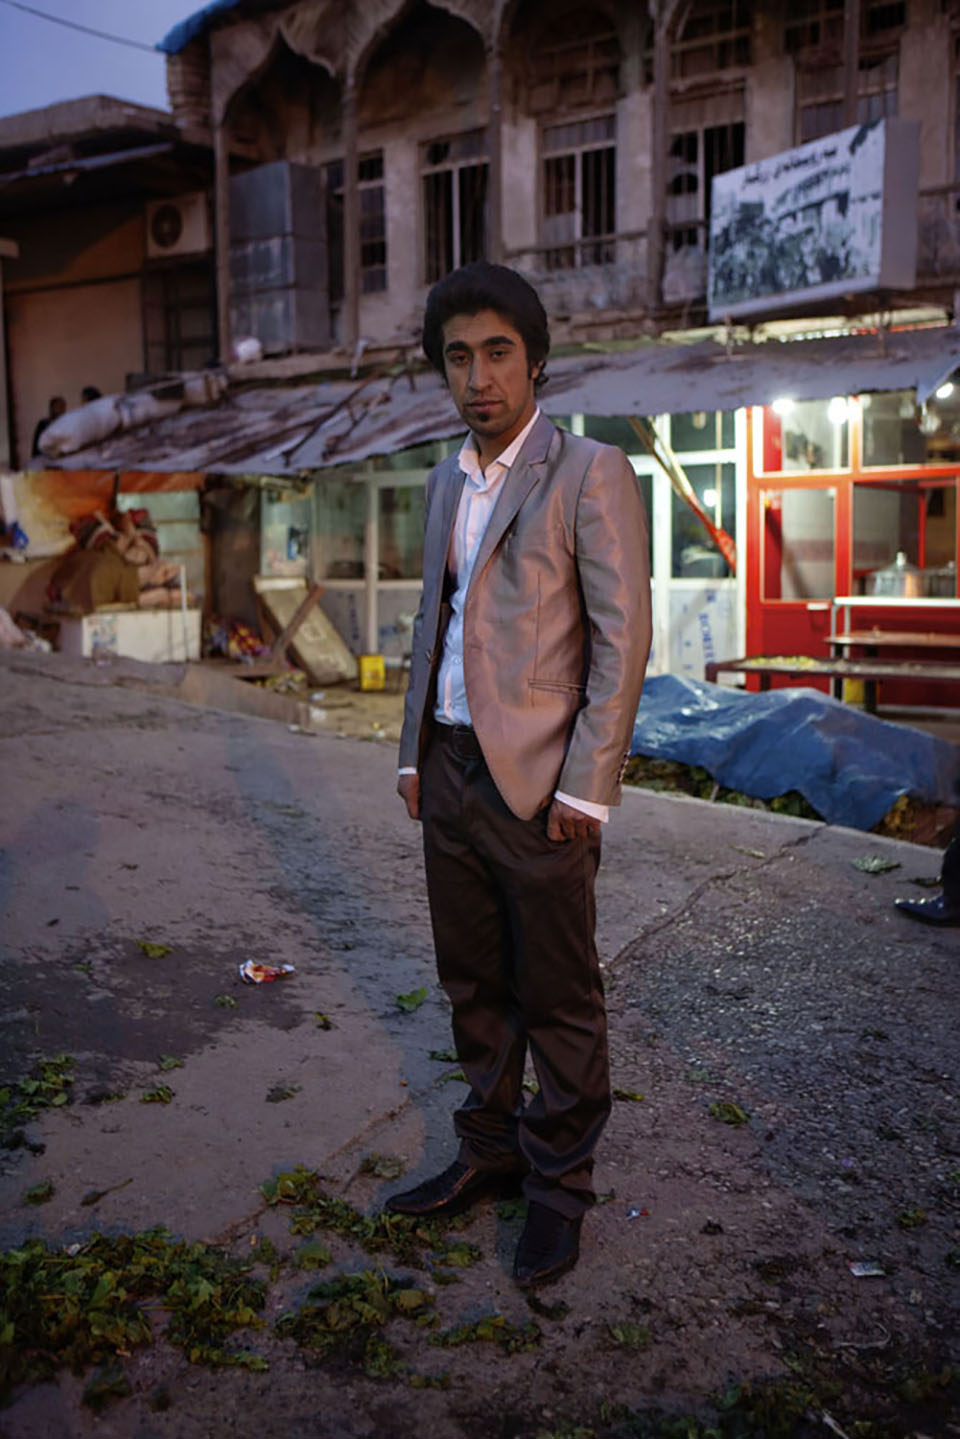 In the central Erbil market as the day ends, a man stands all dressed up with nowhere to go. Although great gains have been made in the new, semi-independent Kurdistan since 2003, there is still a long way to go in developing the infrastructure, both economic and social, to secure the autonomy and success of the Kurdish state.